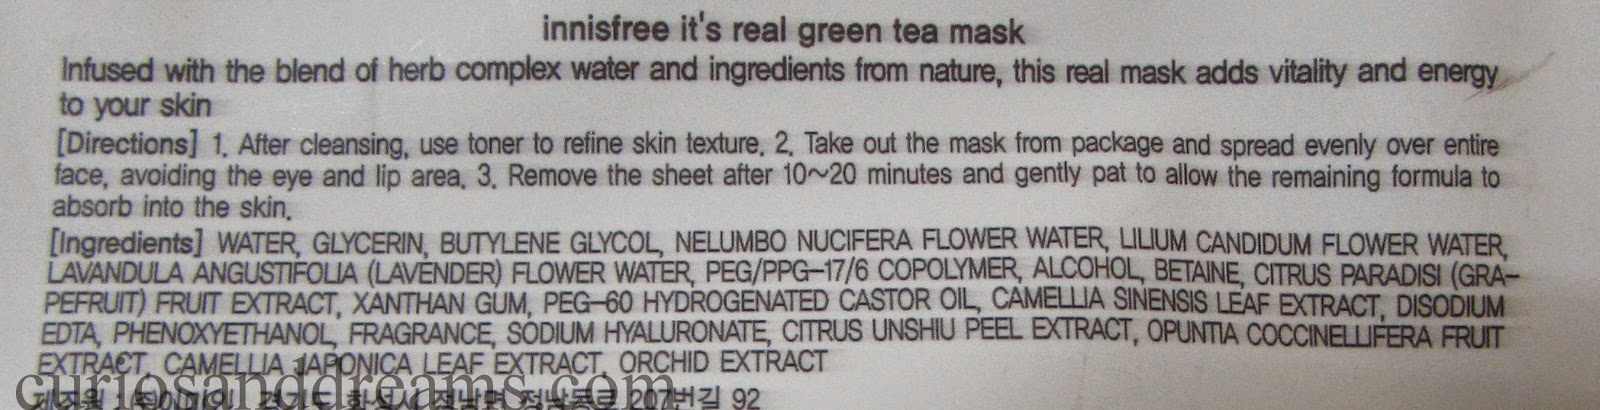 Innisfree It's Real Green Tea Mask review, Innisfree Green Tea Mask review